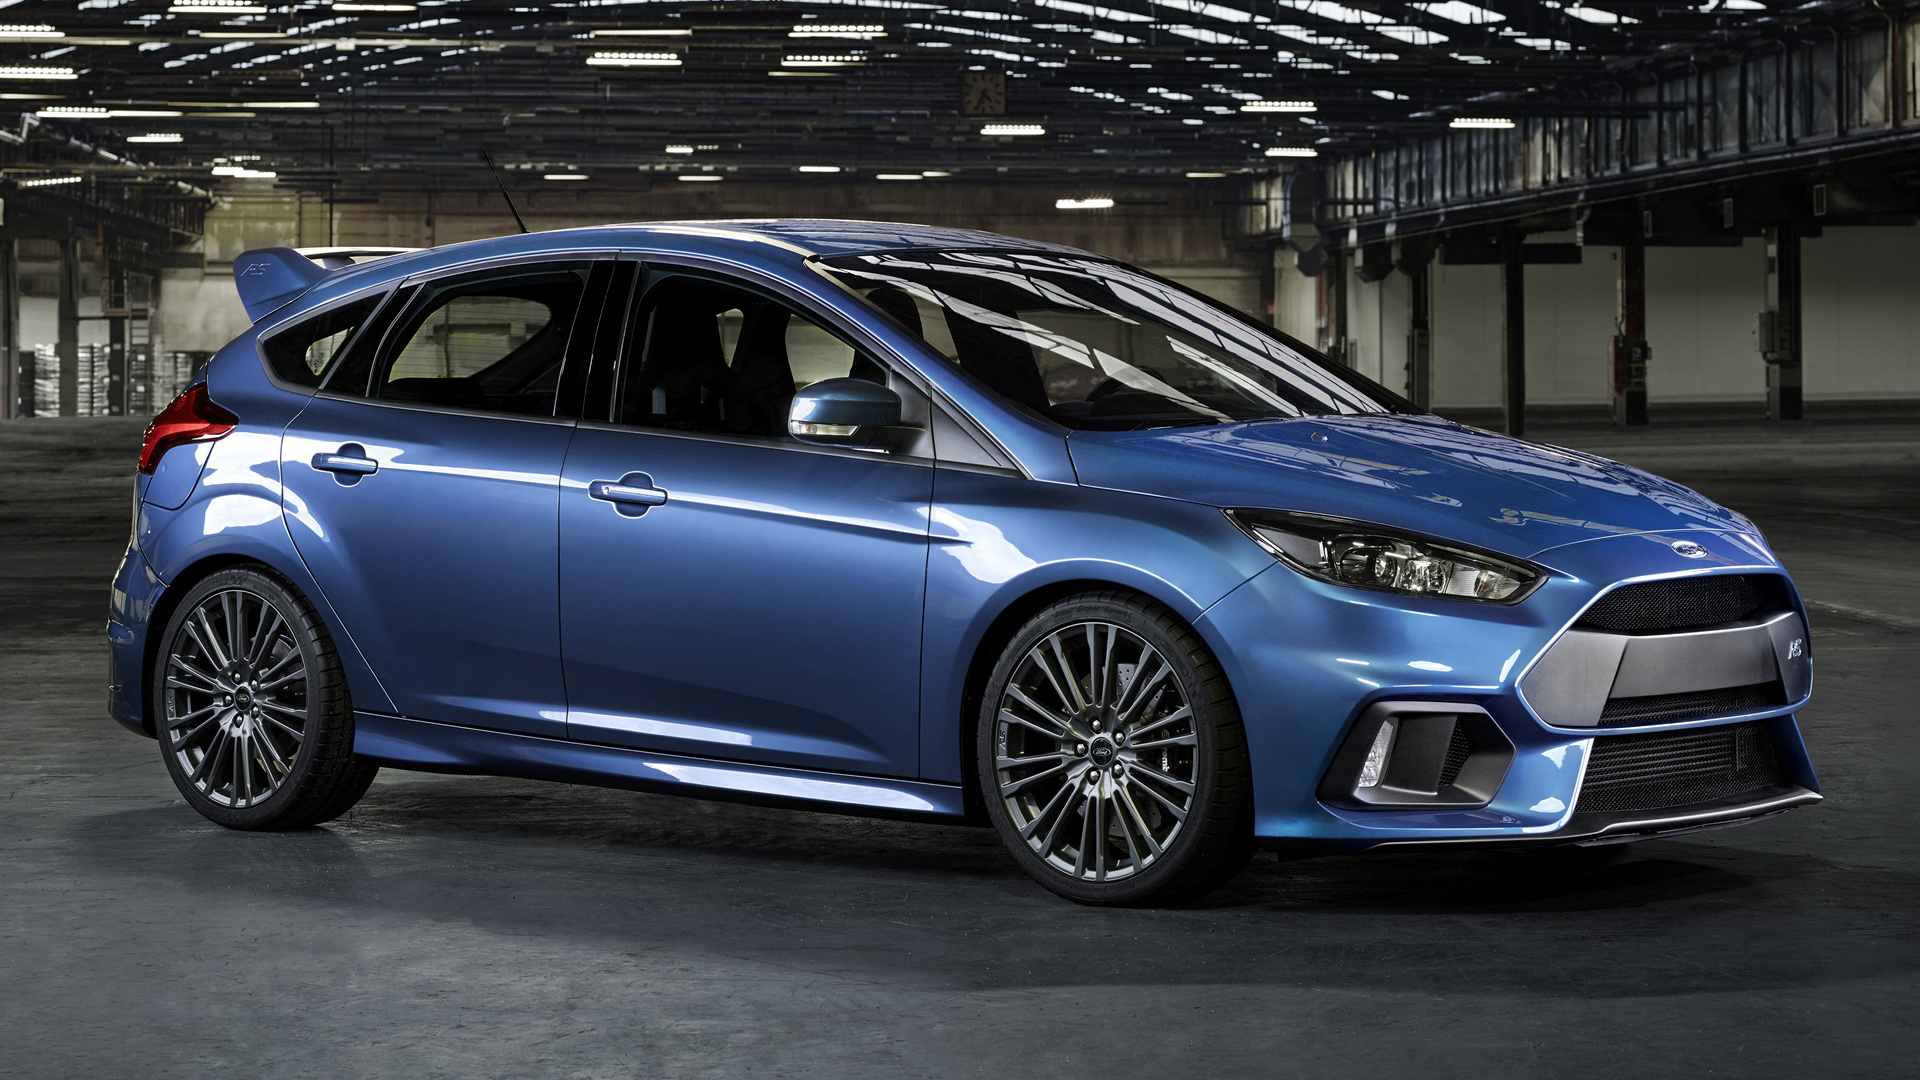 Ford Focus RS (2015) Wallpapers and HD Images - Car Pixel